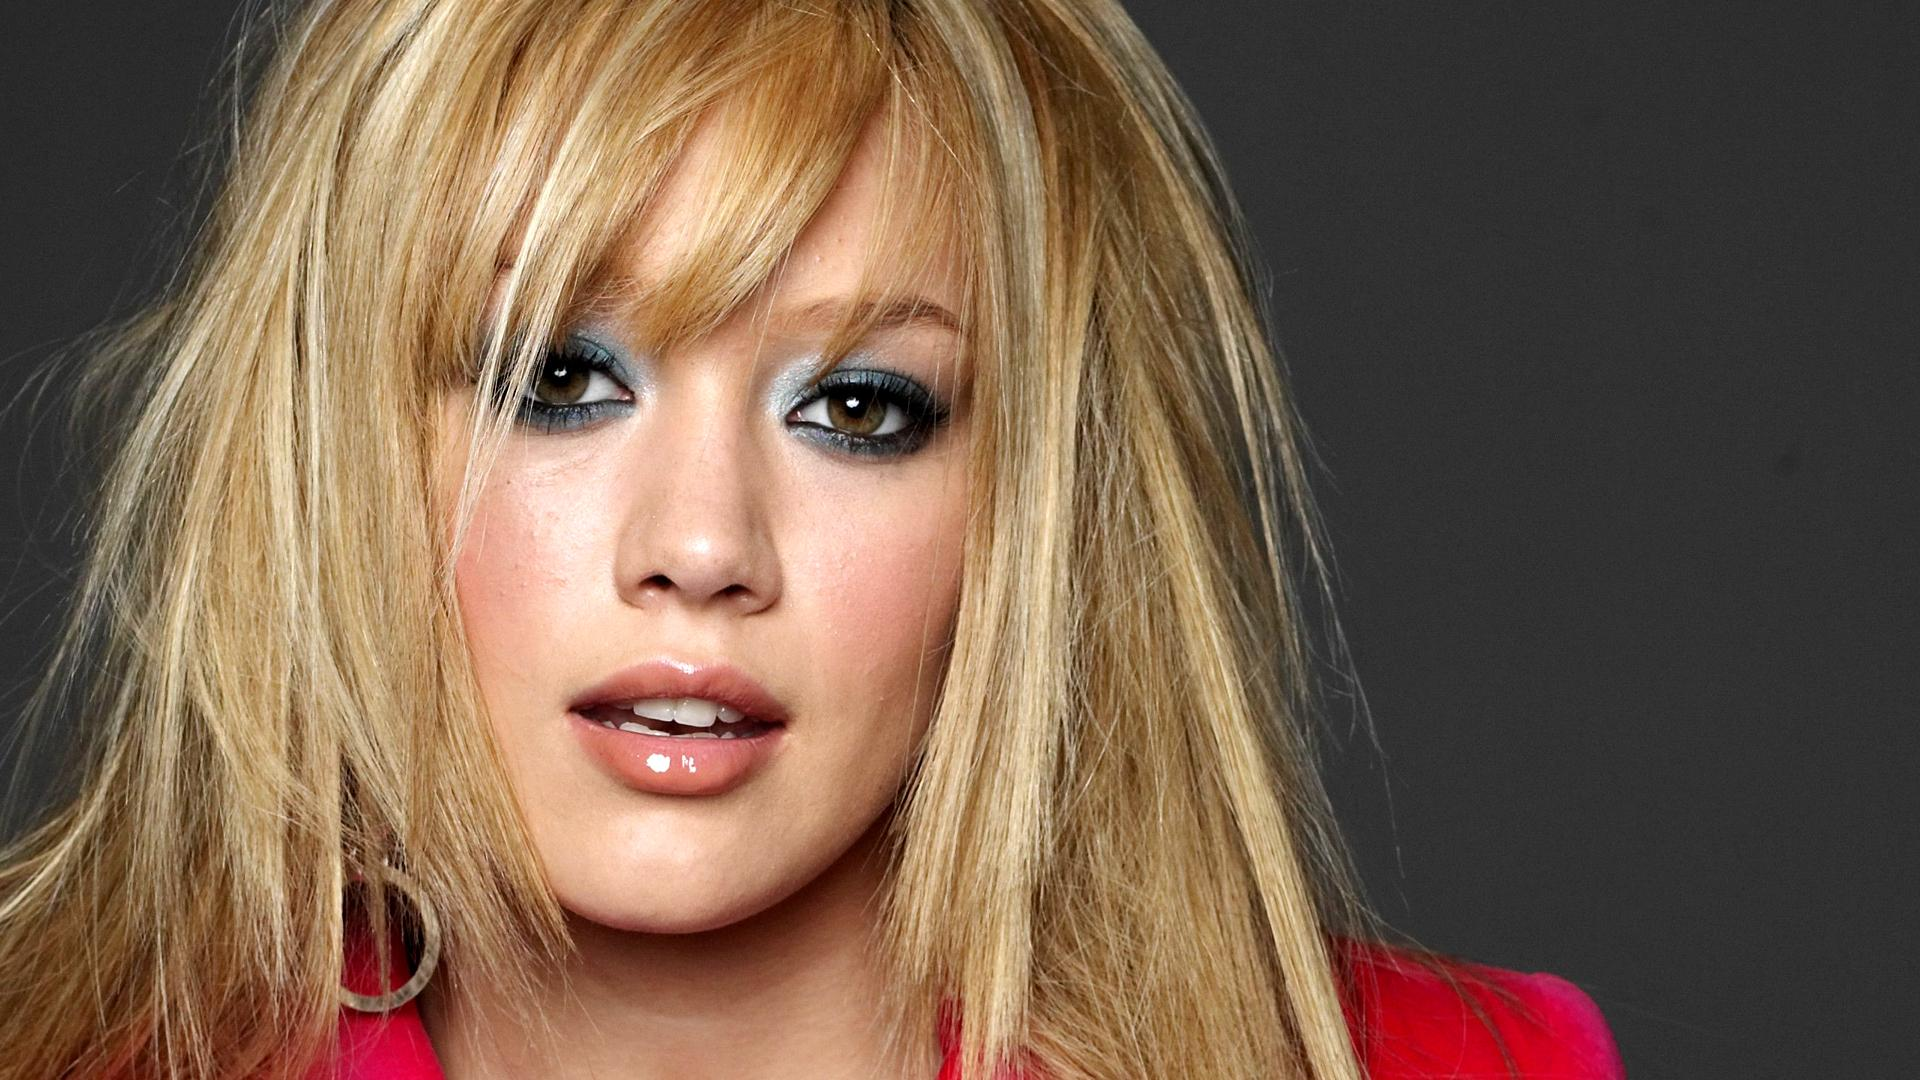 Hilary Duff Wallpapers High Resolution And Quality Download